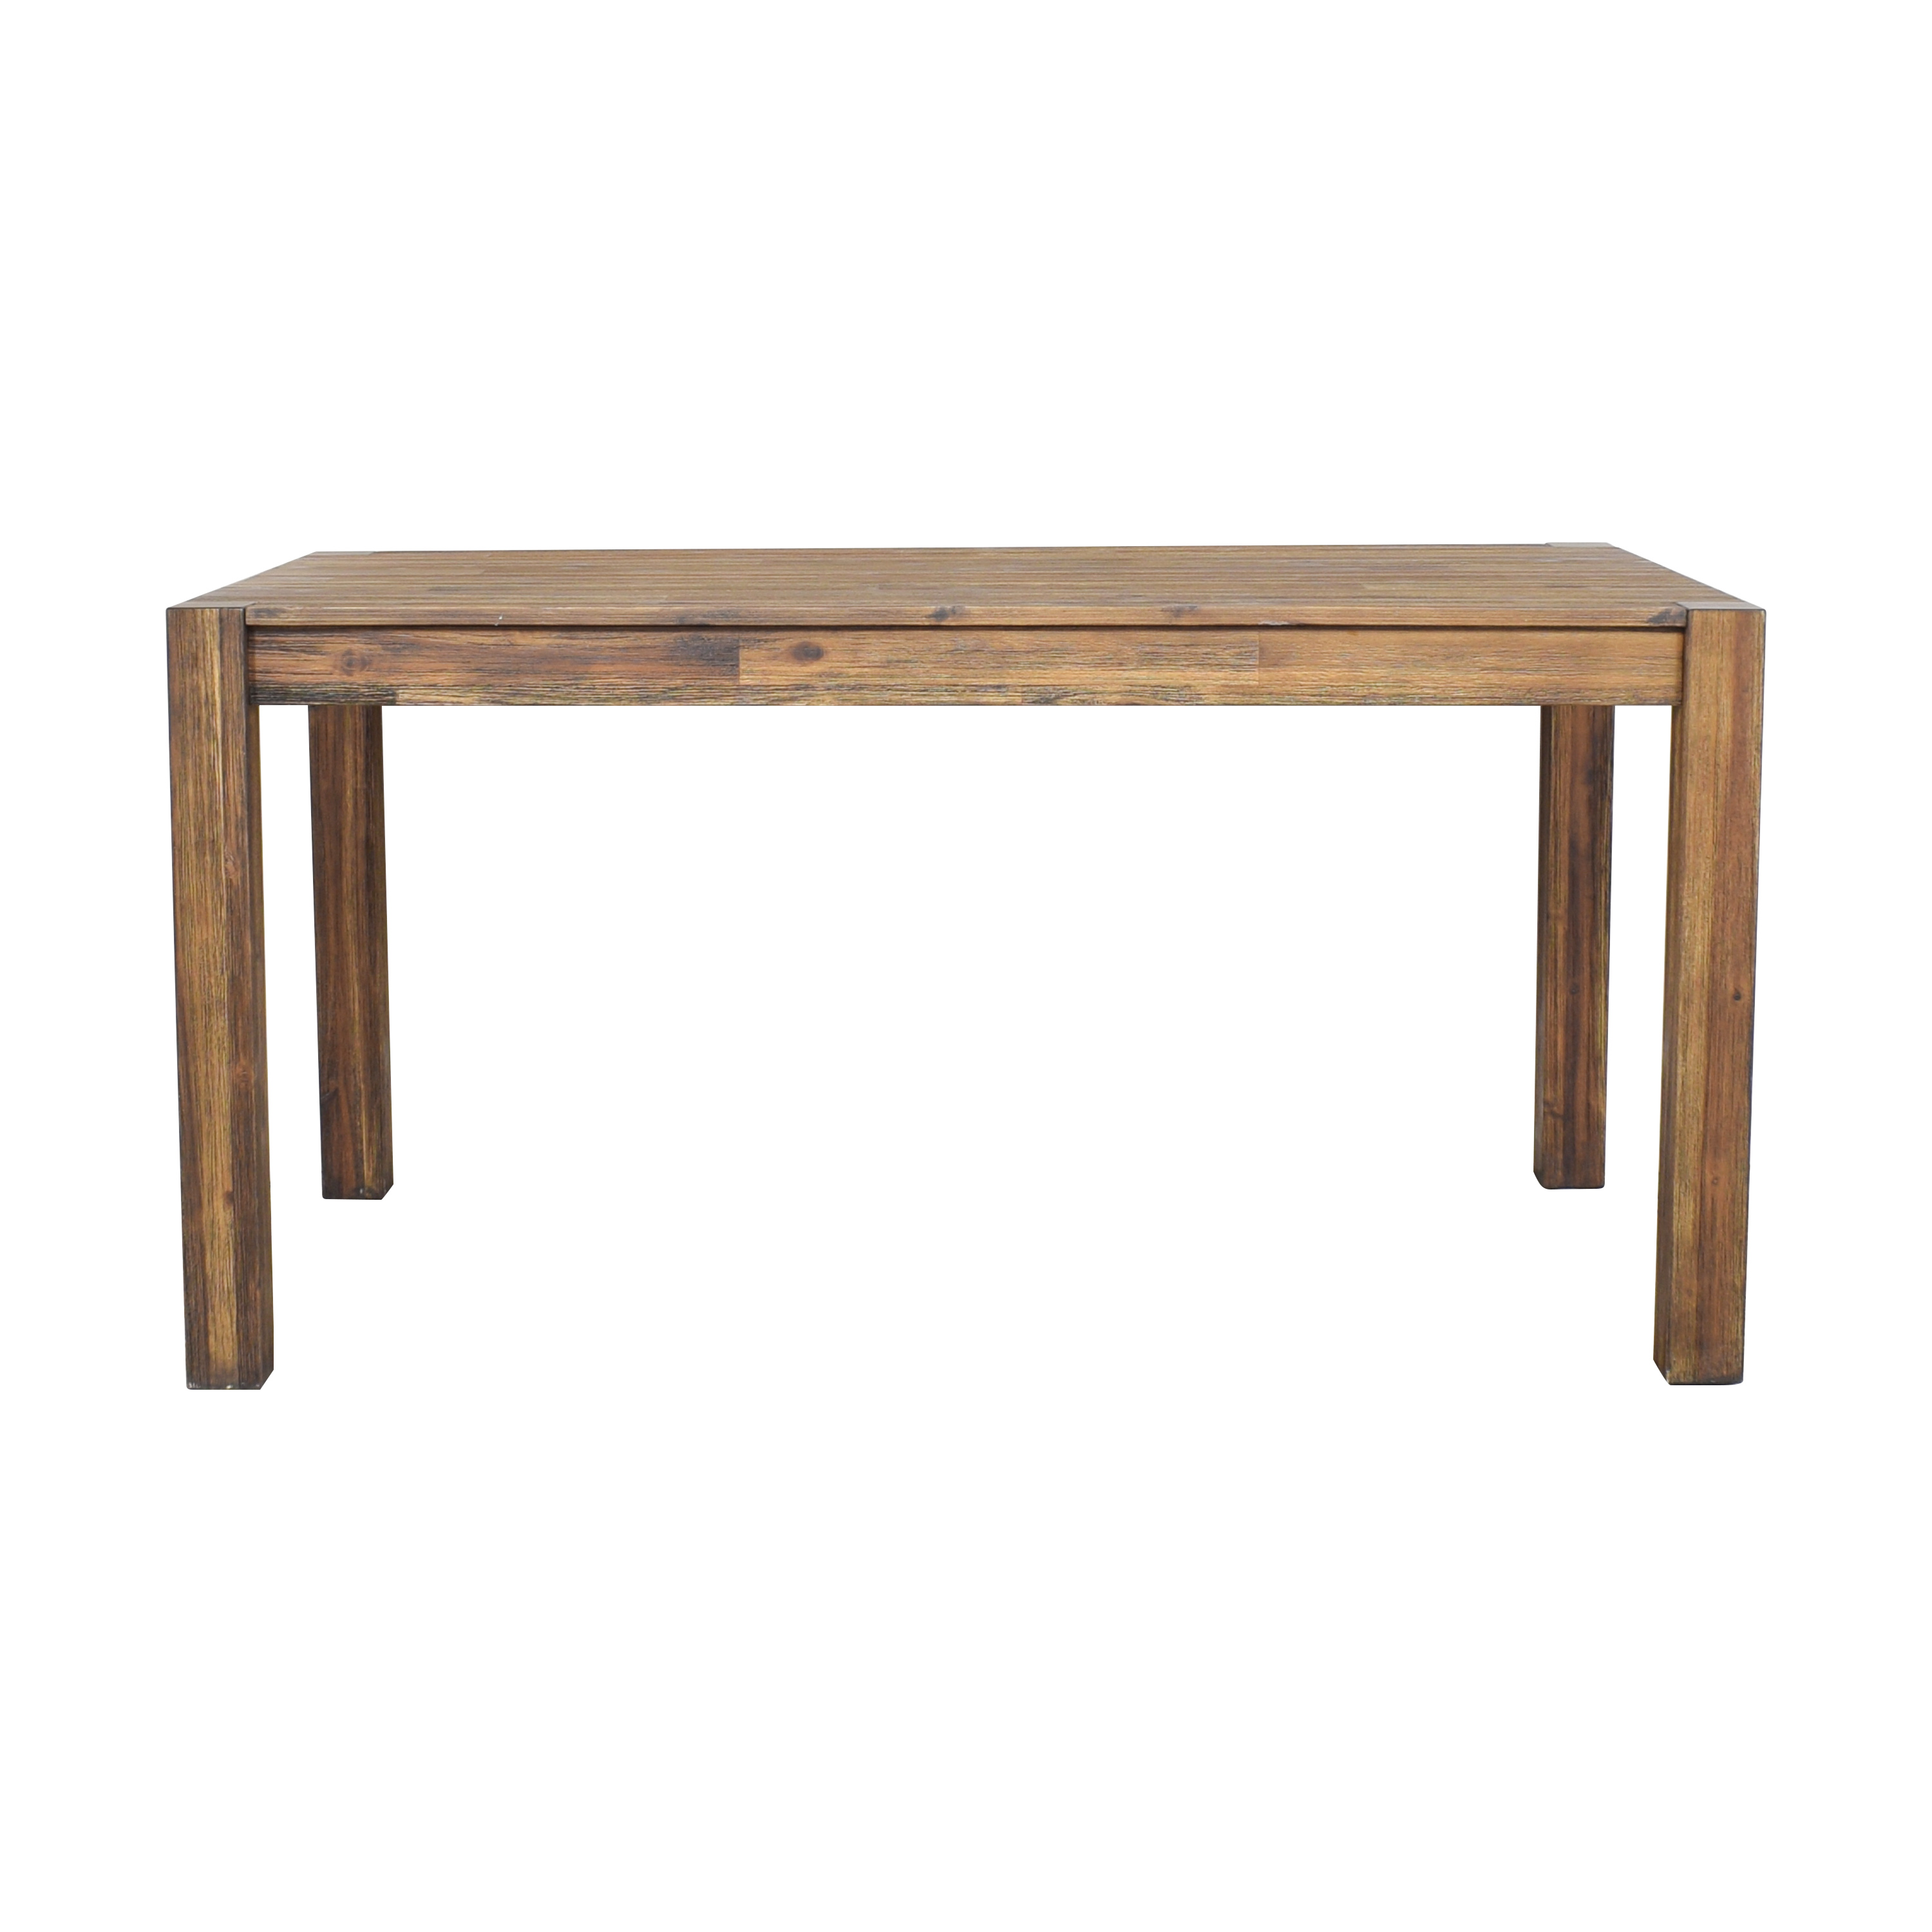 Macy's Macy's Avondale Dining Table brown